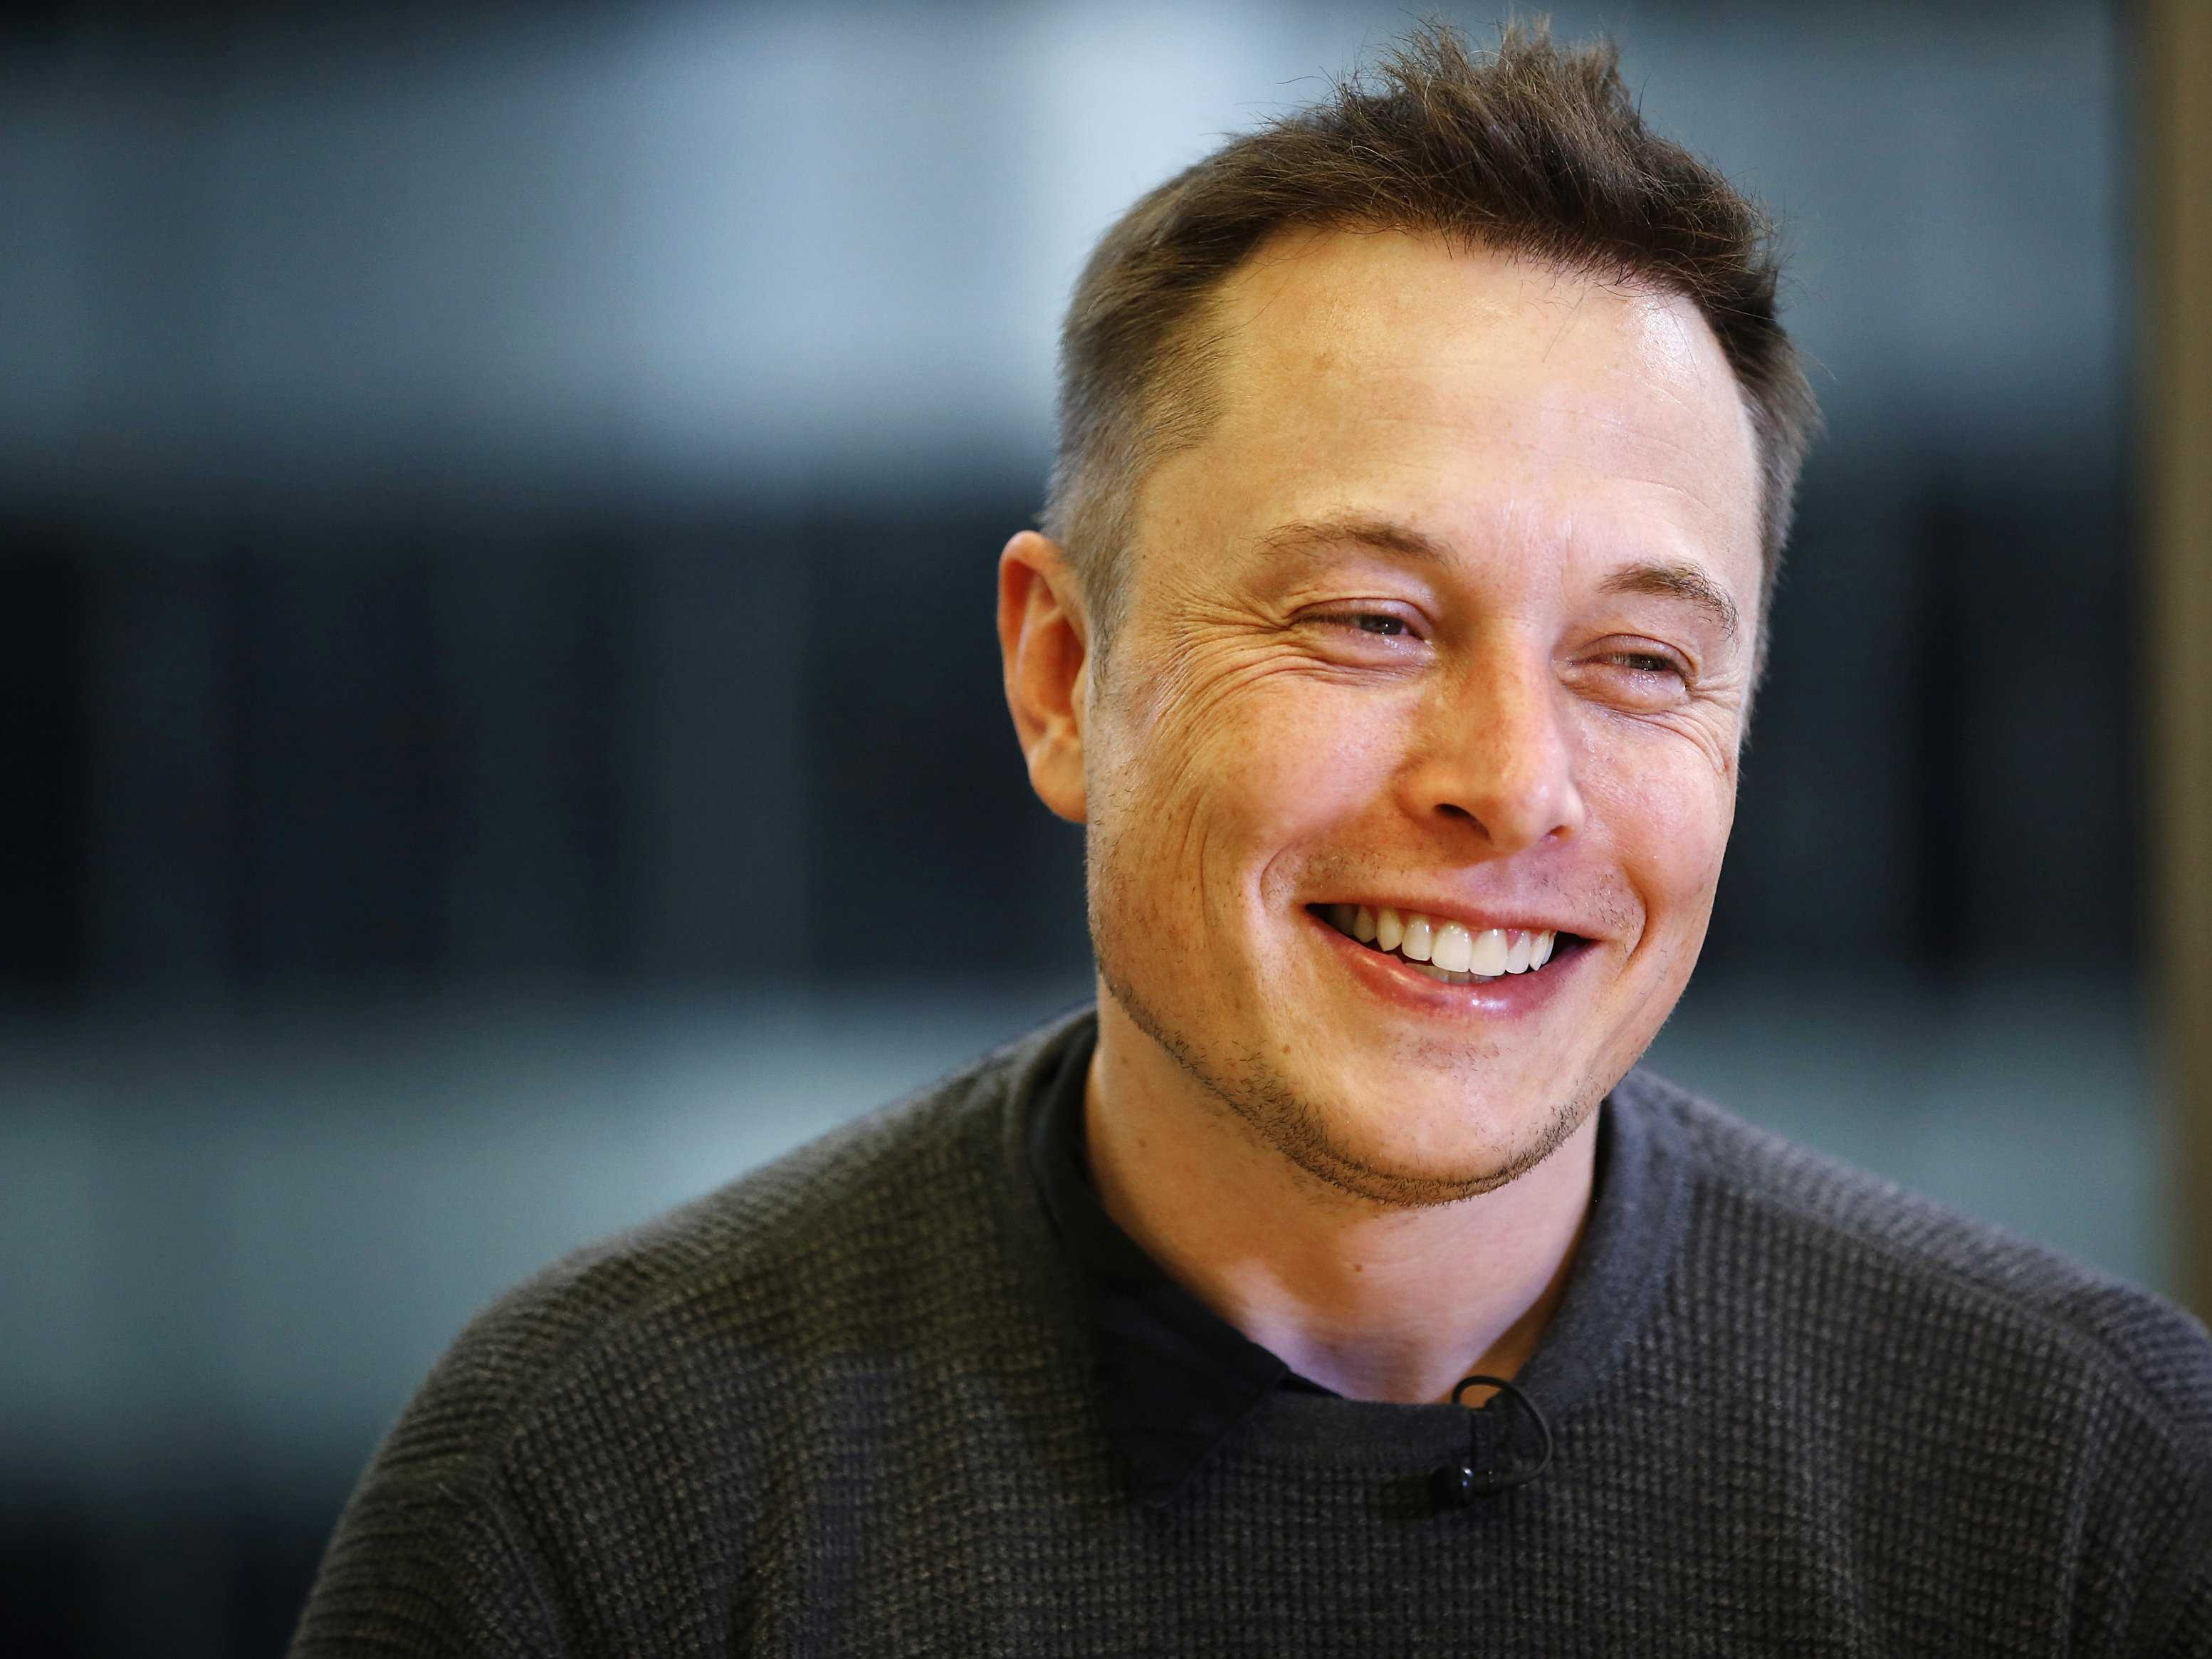 Fun Facts About Elon Musk – The Brain Behind Tesla and SpaceX